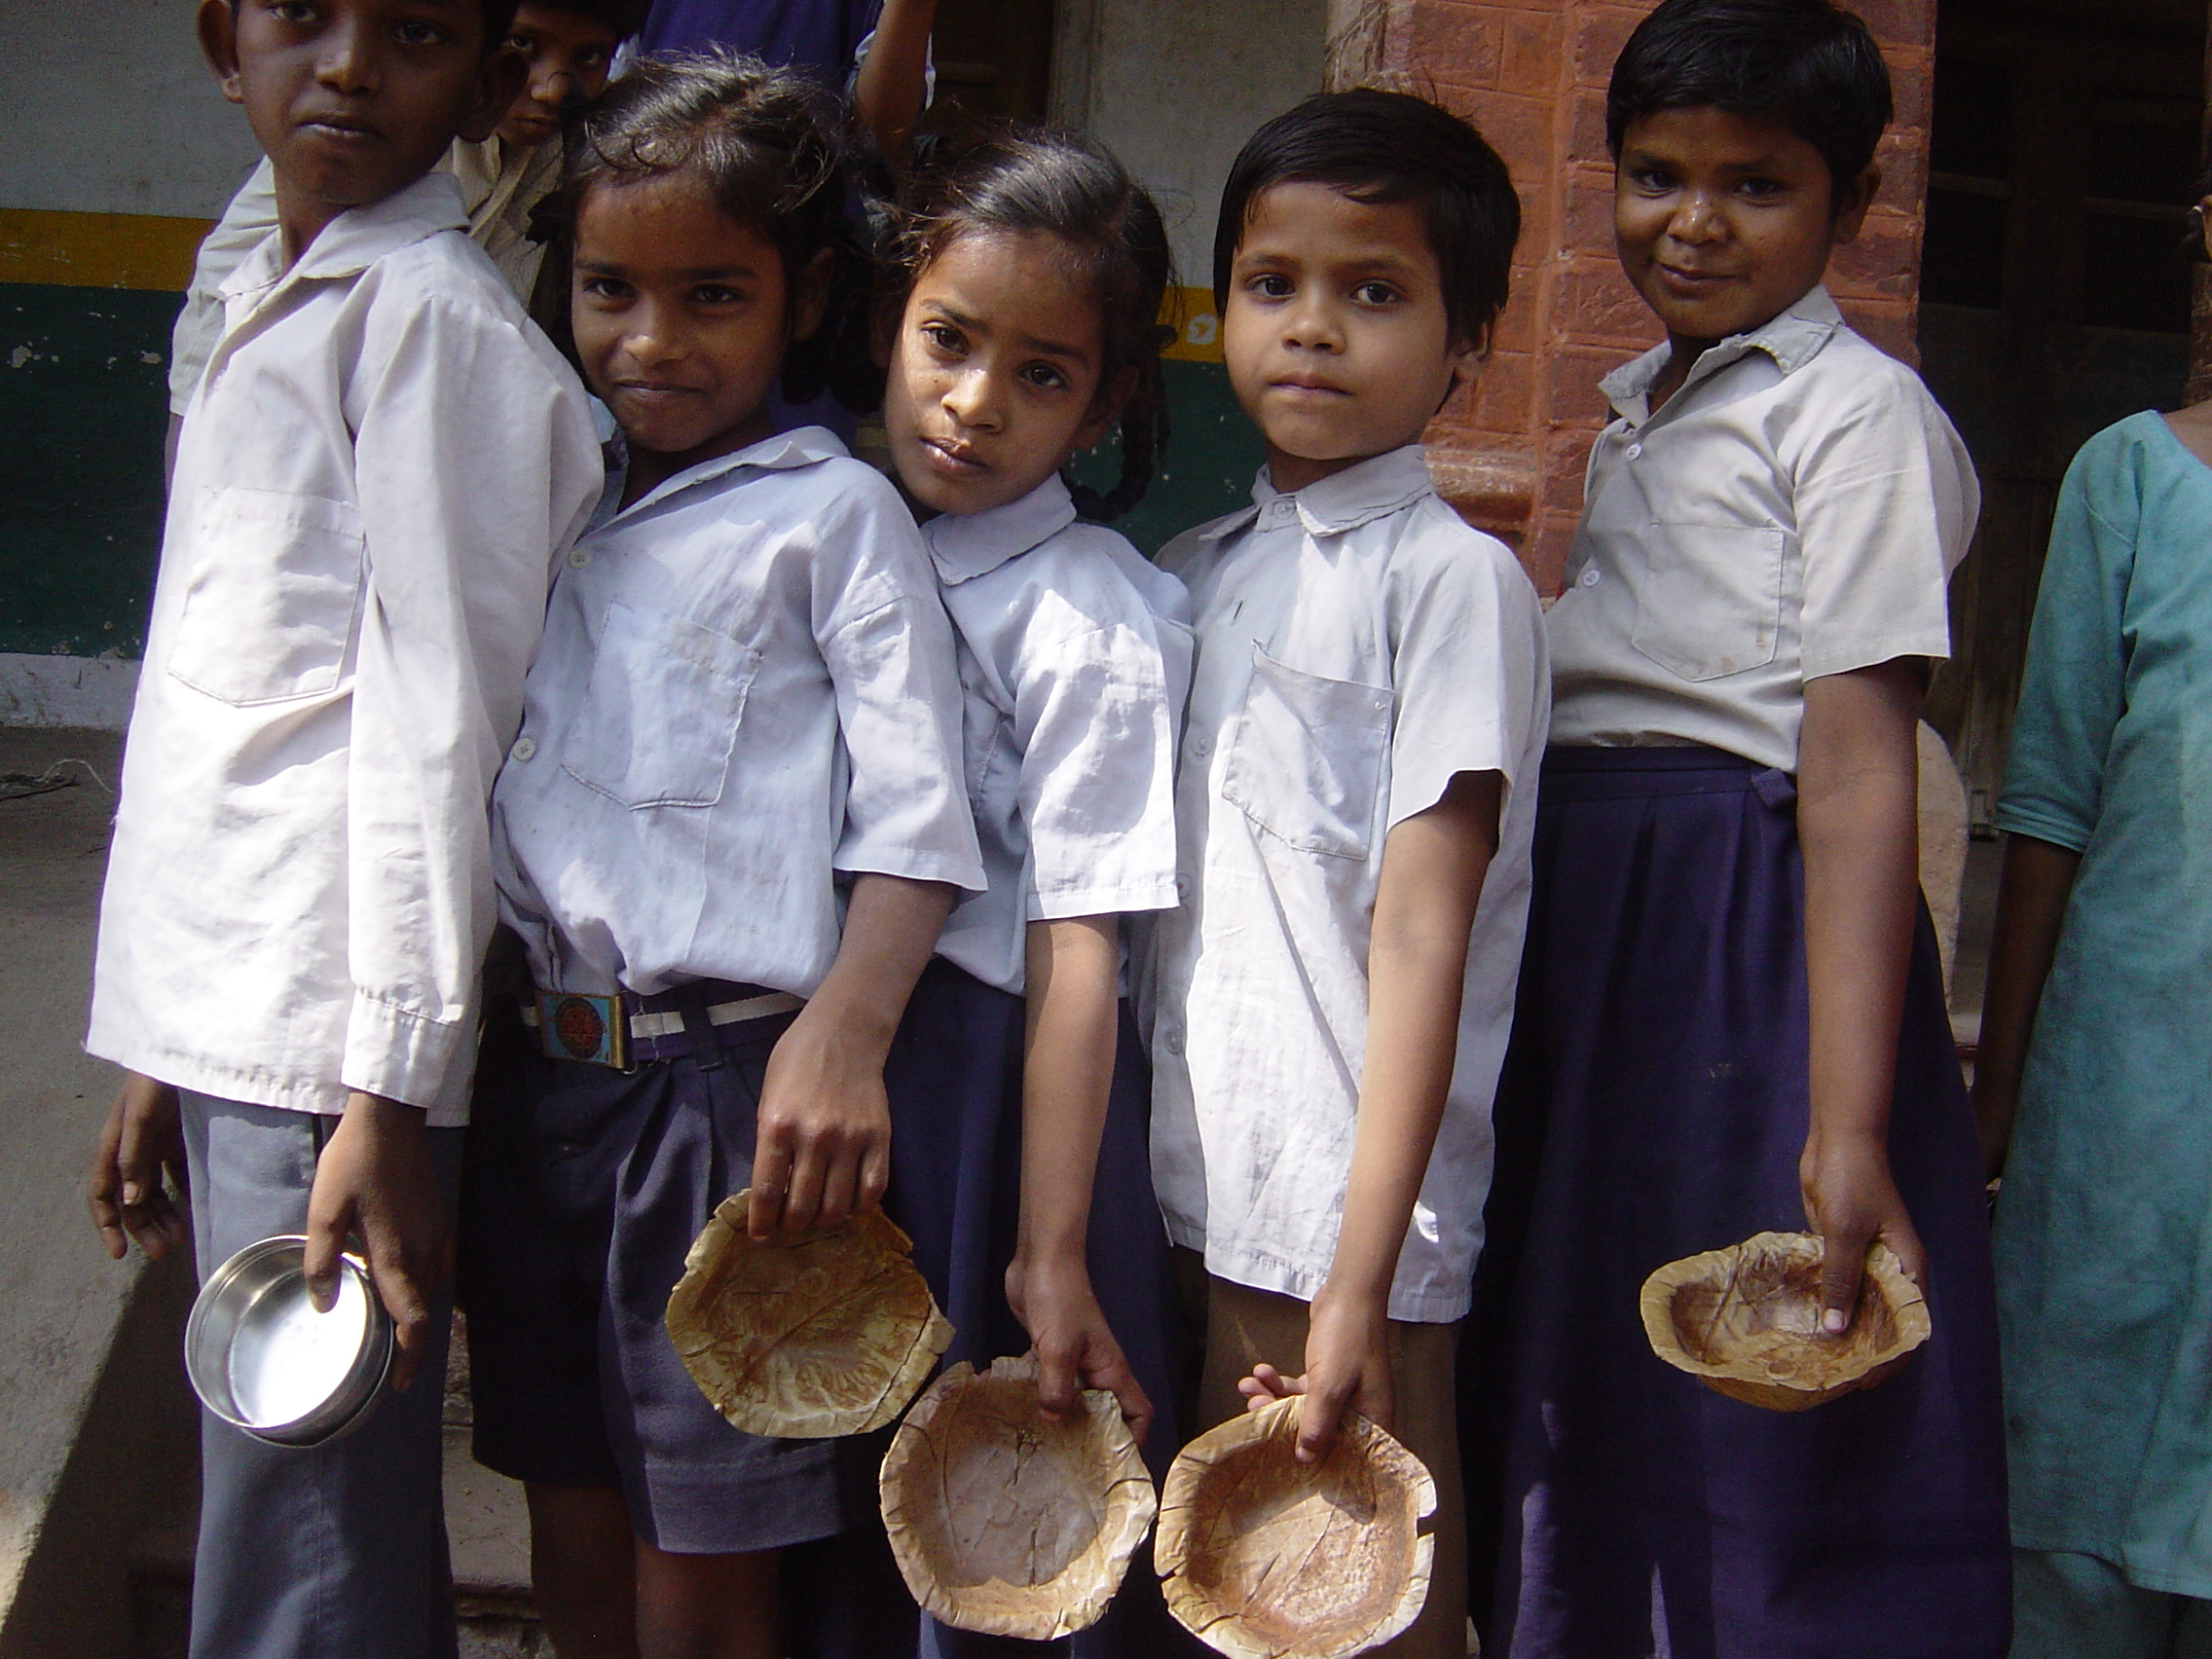 Akshaya Patra beneficiaries wait in line with their bowls to receive what might be their only meal of the day served at school. This meal encourages them to attend school instead of taking up menial jobs.